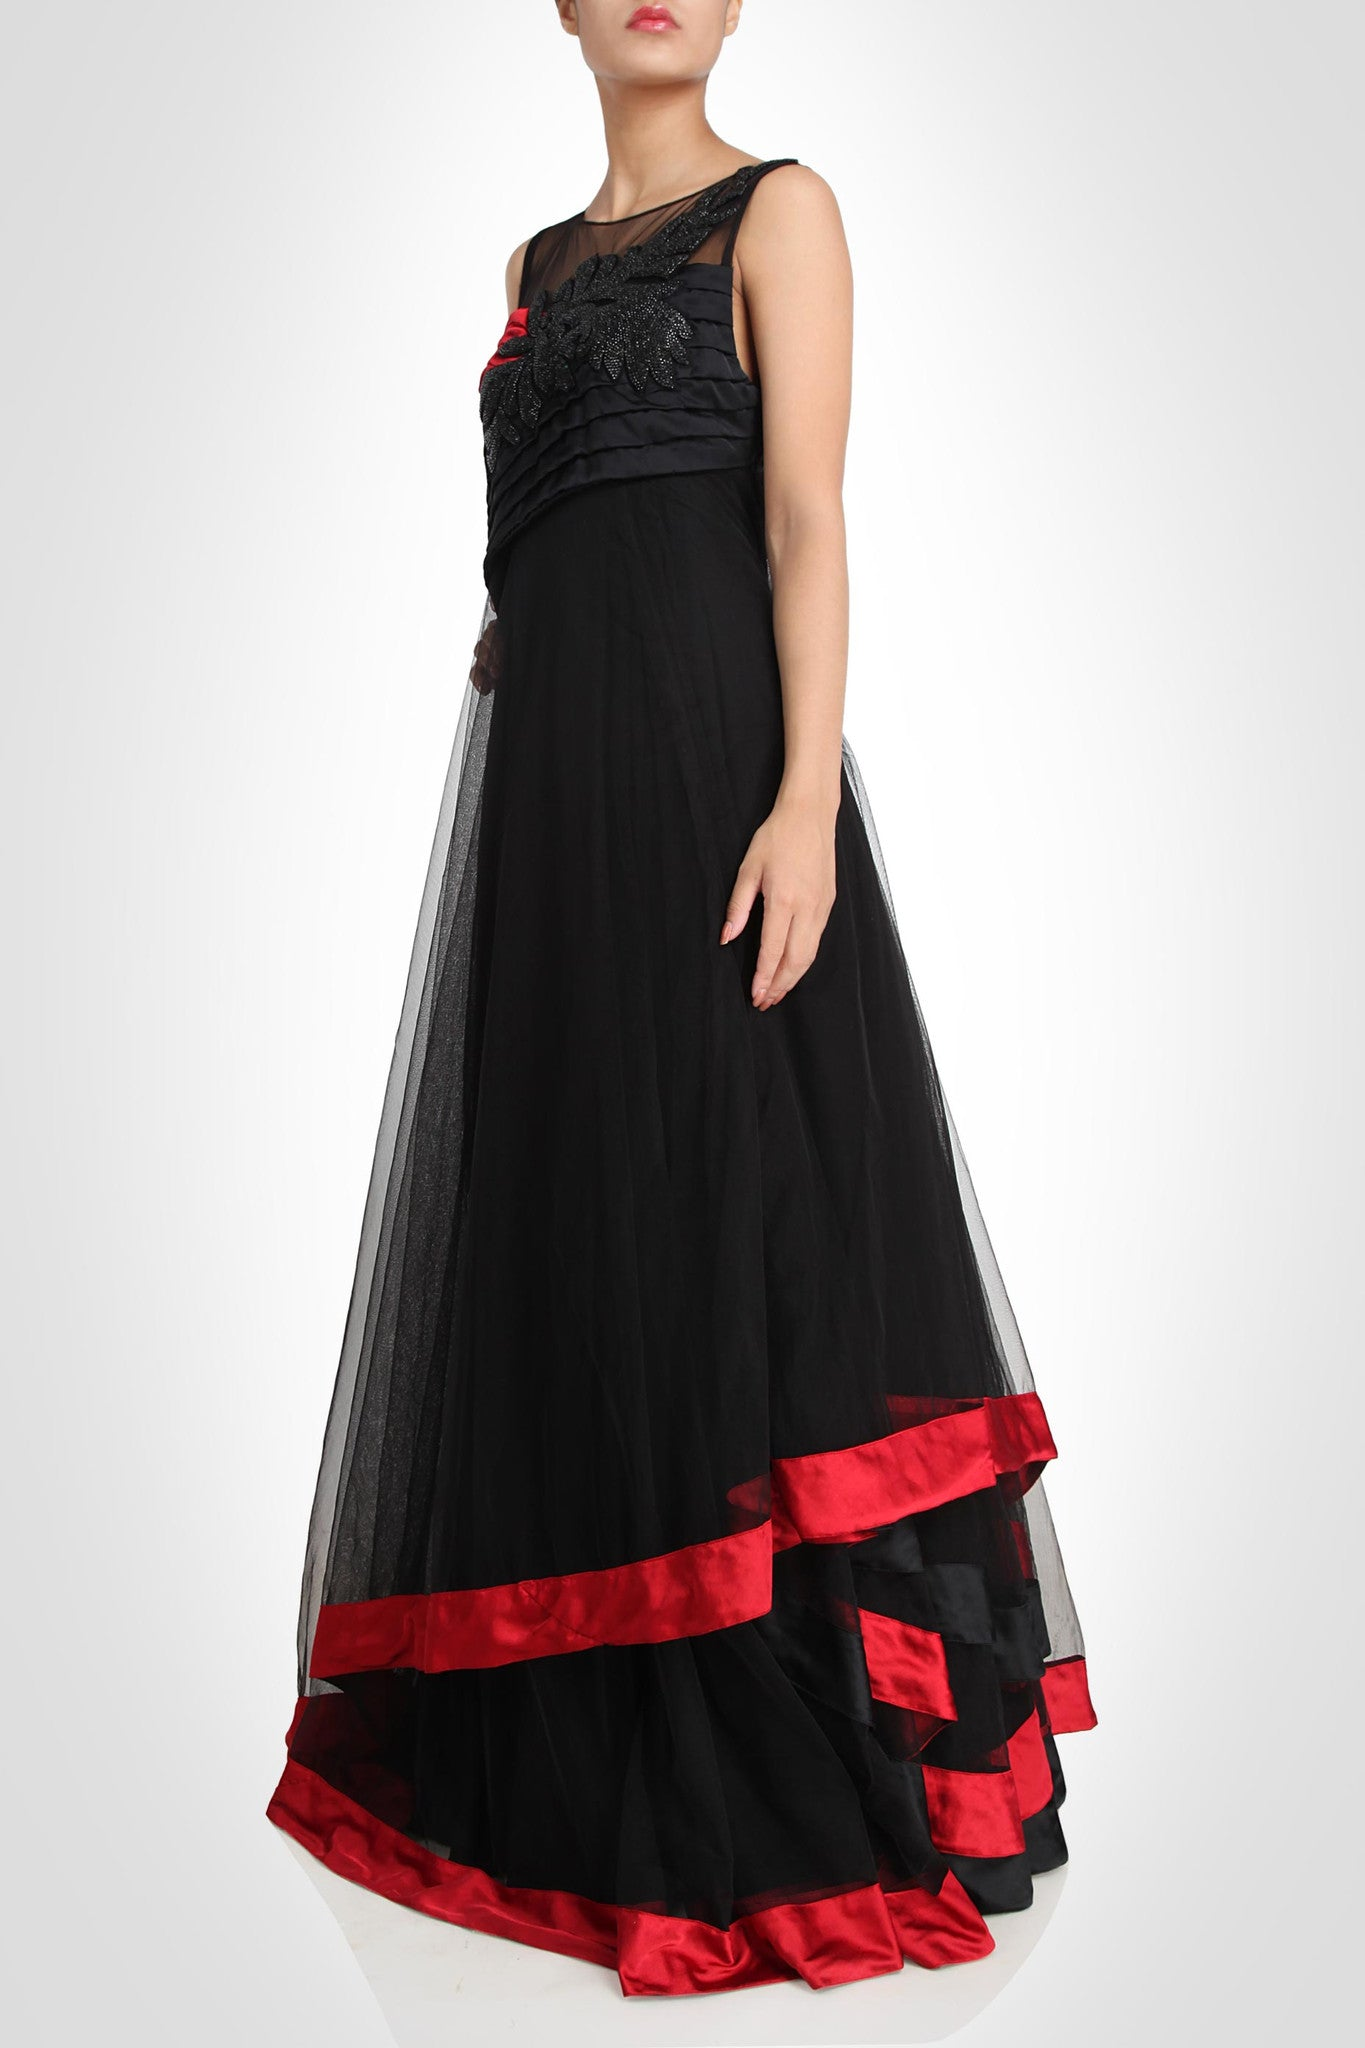 Black color designer gown